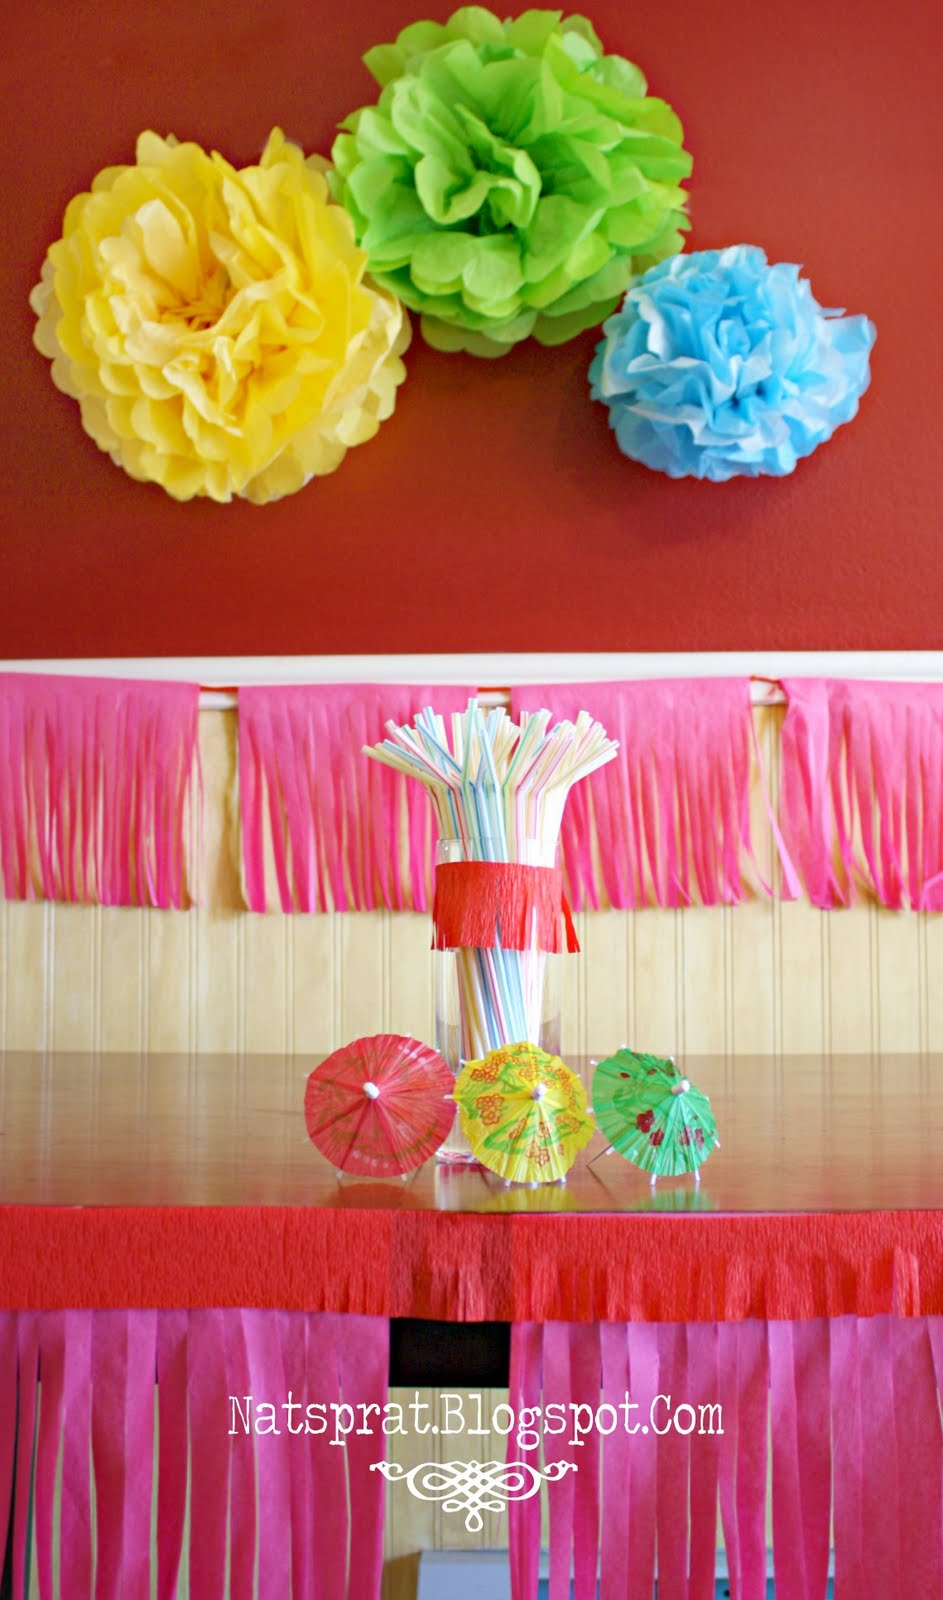 paper party decorations Celebrate in style with party decorations from partypro - decorations for any event can be found - from birthday banners, tissue garland, flags or party bunting - partypro is your source for party decorations.